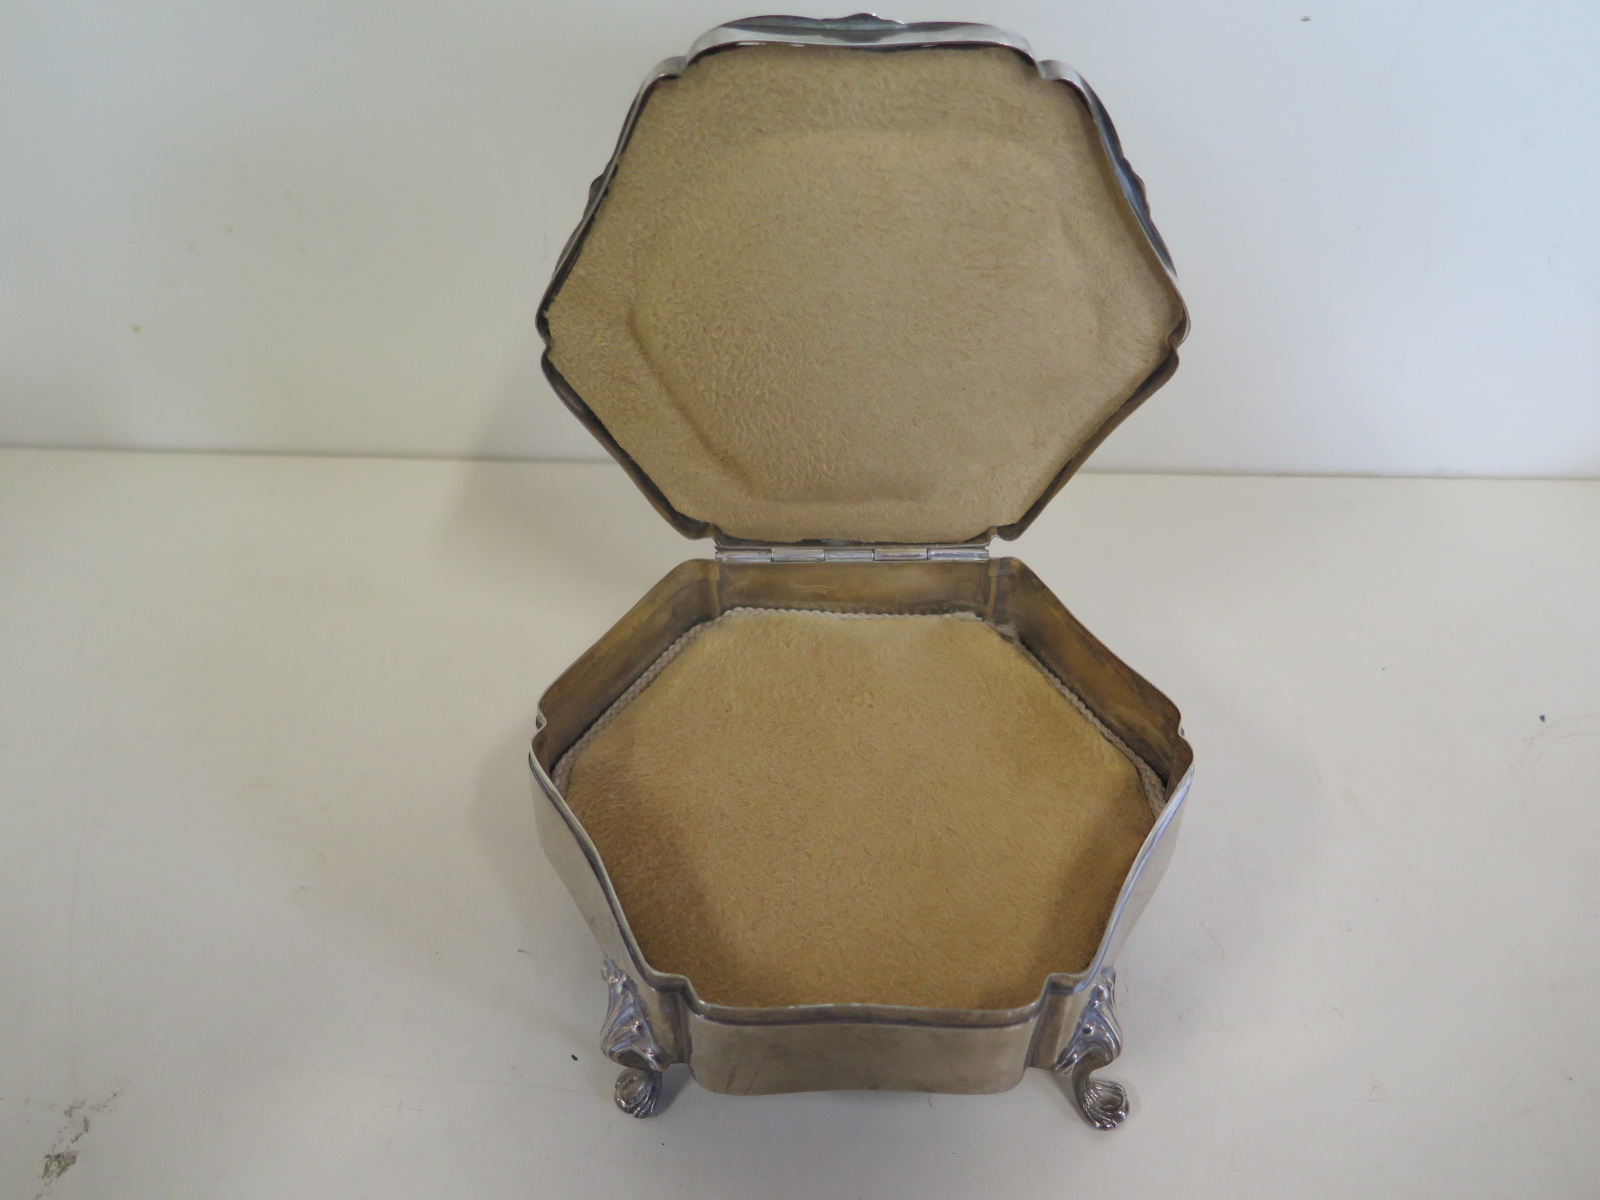 Lot 599 - A large hexagonal silver and tortoiseshell jewellery casket on four legs with pad feet - approx 12cm